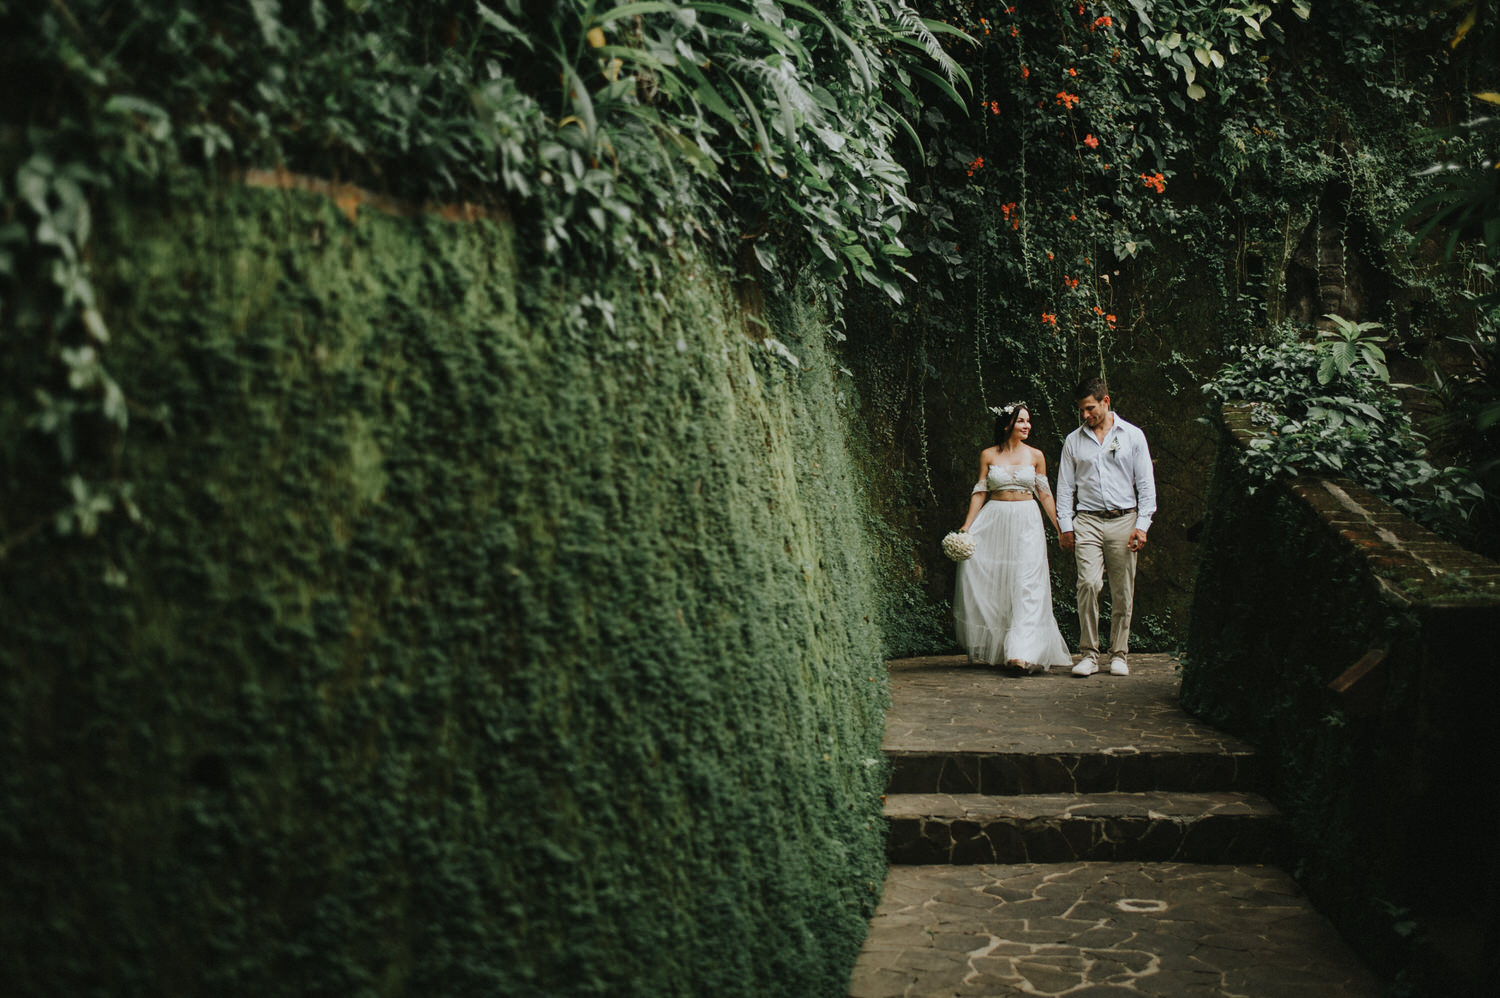 bali wedding - elopement - ubud wedding - diktatphotography - olga + Jason - 61